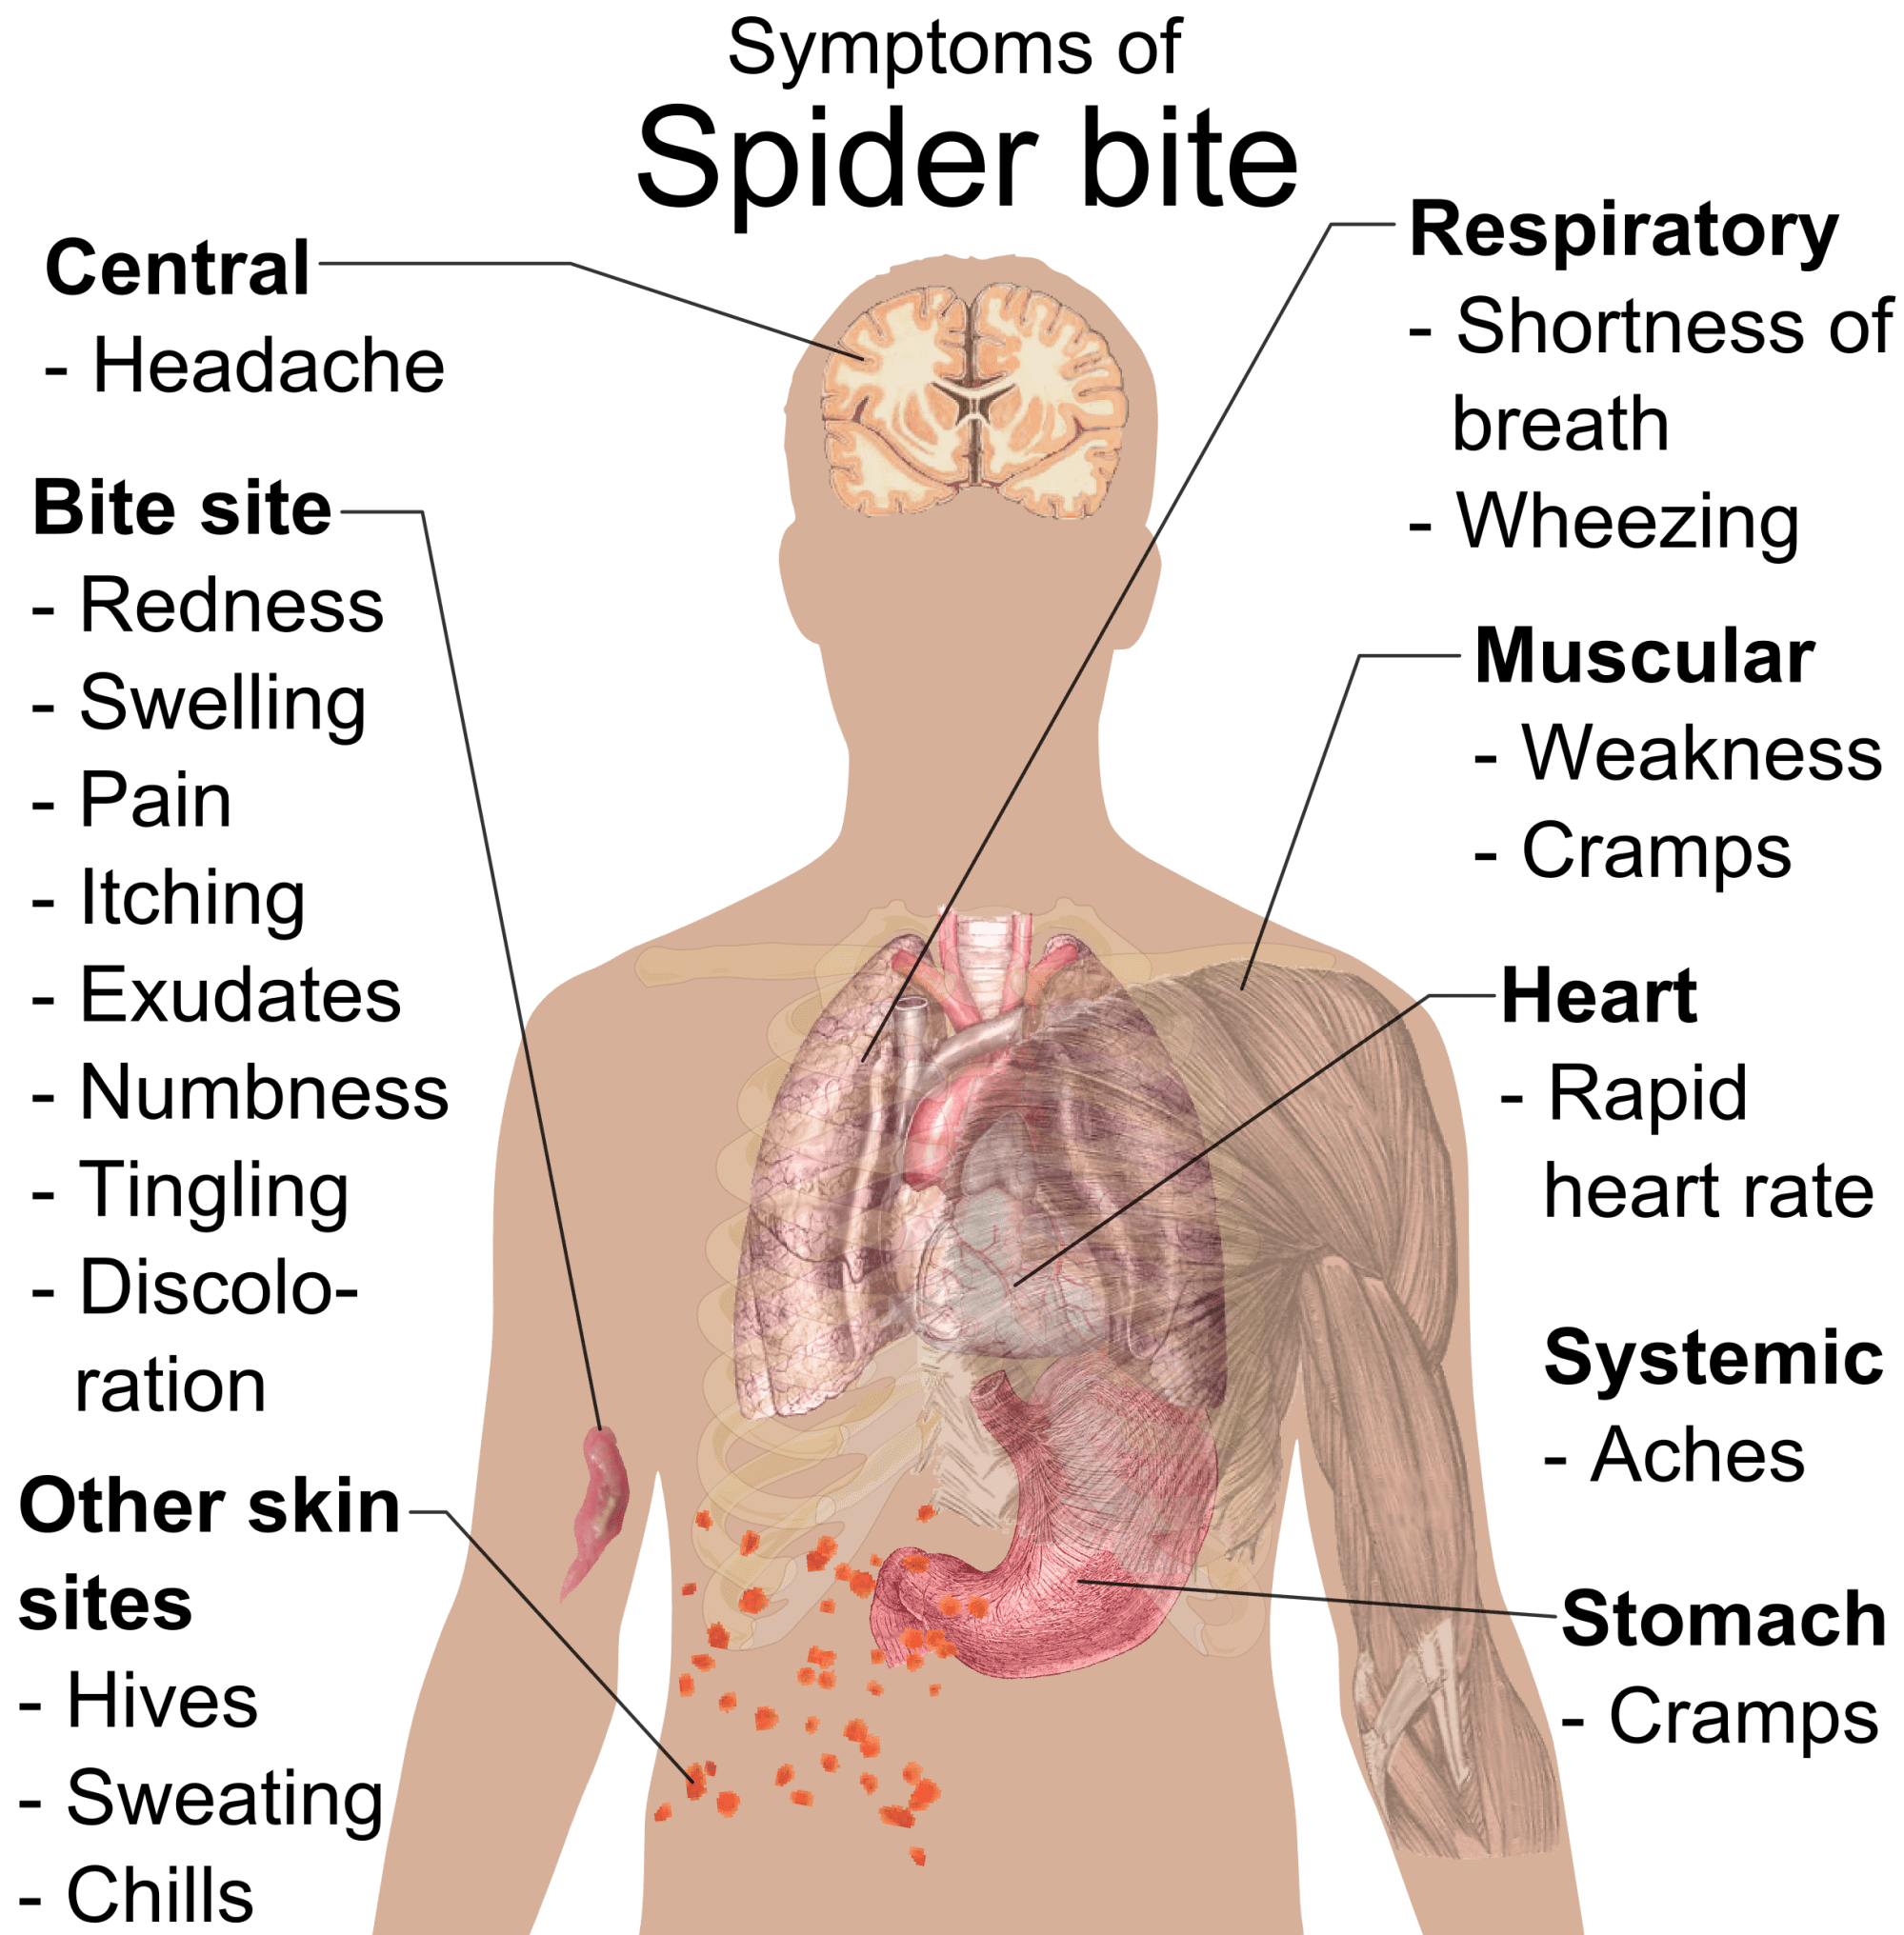 hight resolution of  symptoms of spider bite png